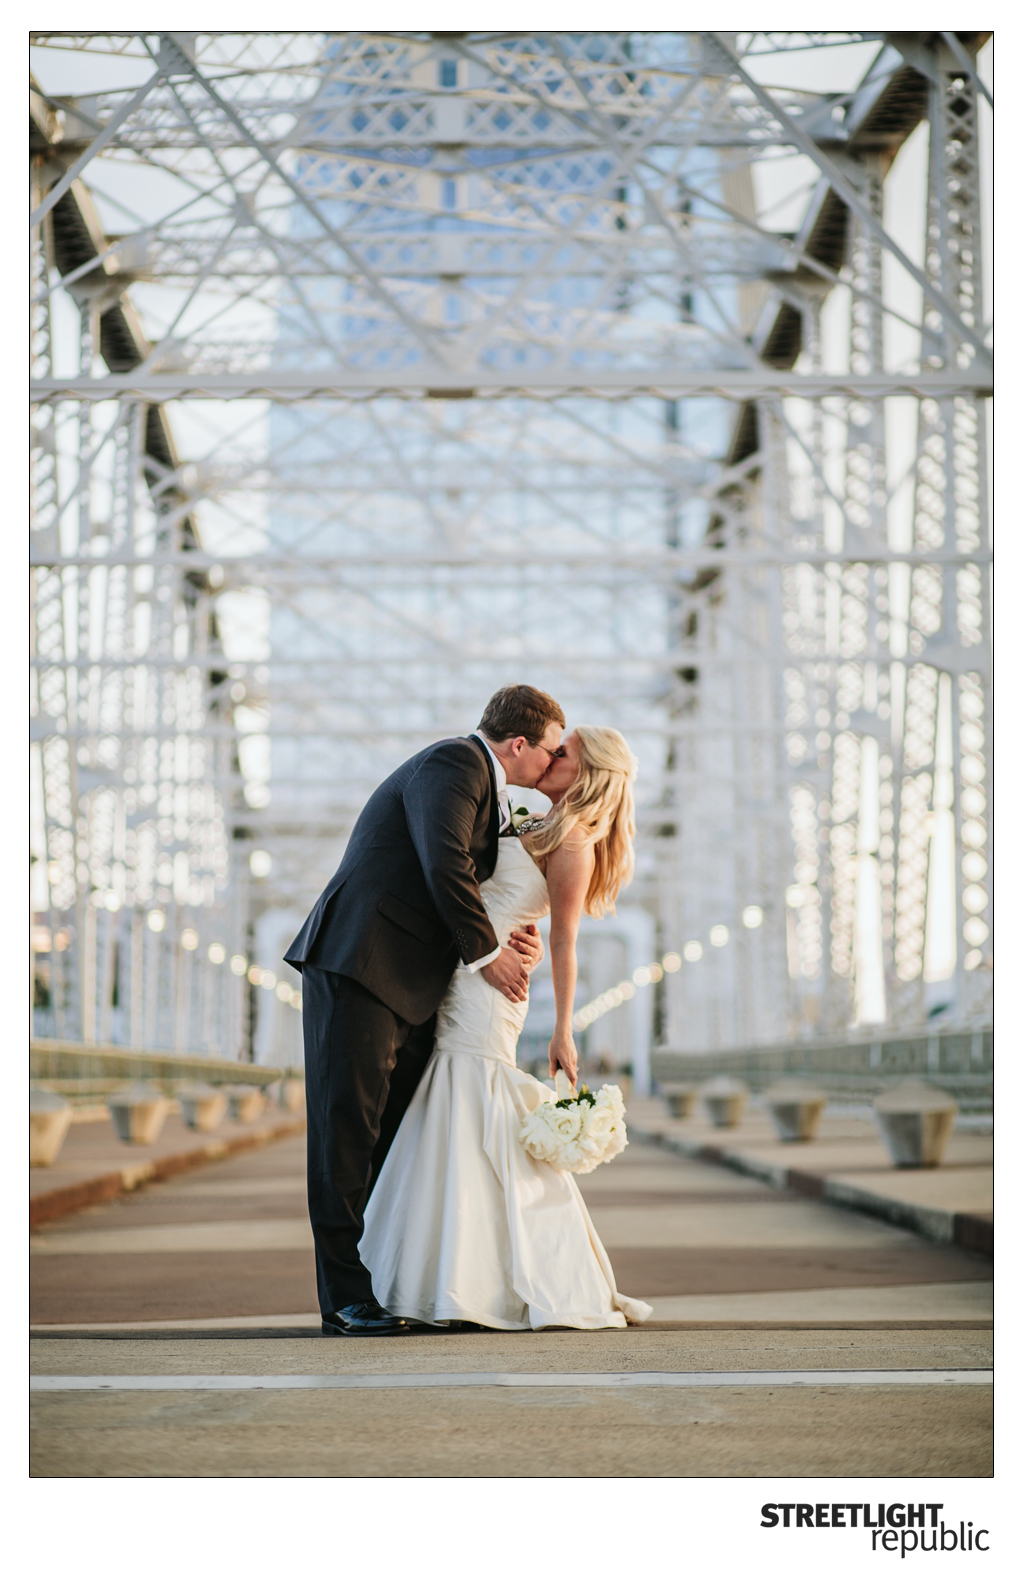 Nashville Wedding Photographers. Tips on Creating the Perfect Wedding Photo-Wise